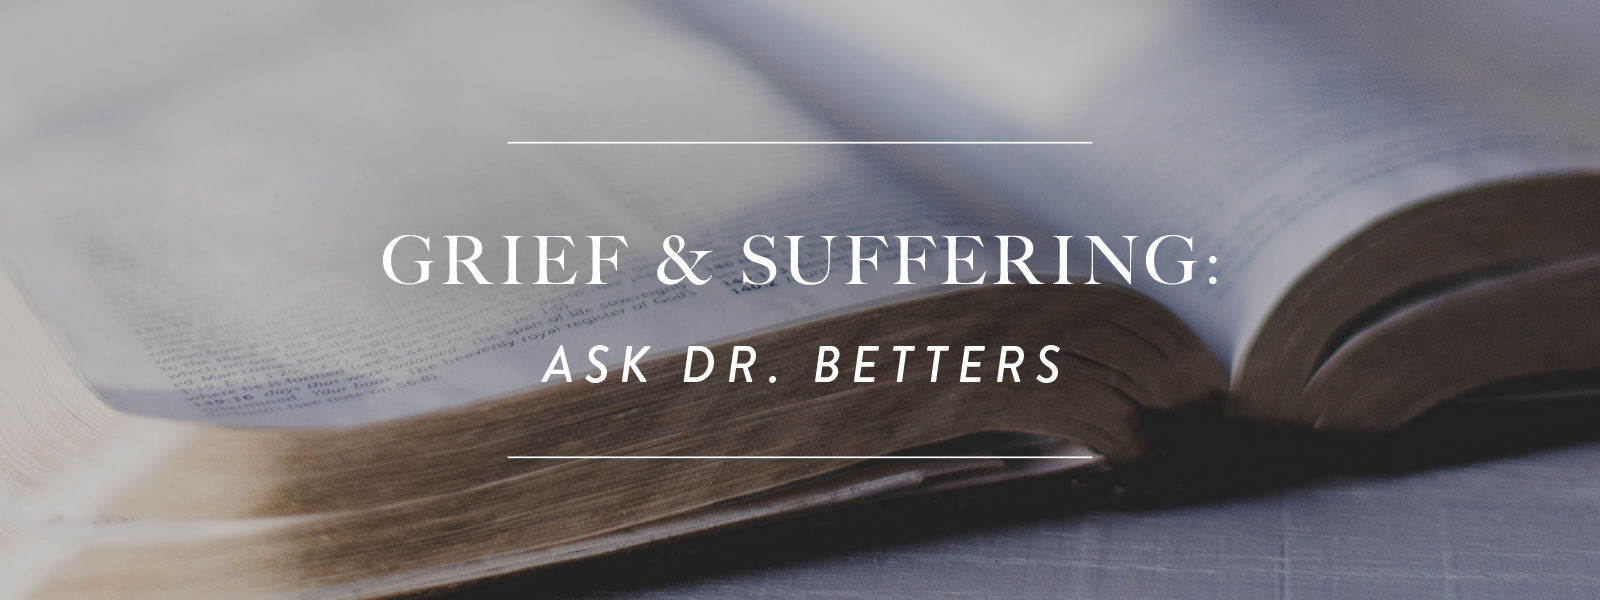 Grief & Suffering: Ask Dr. Betters